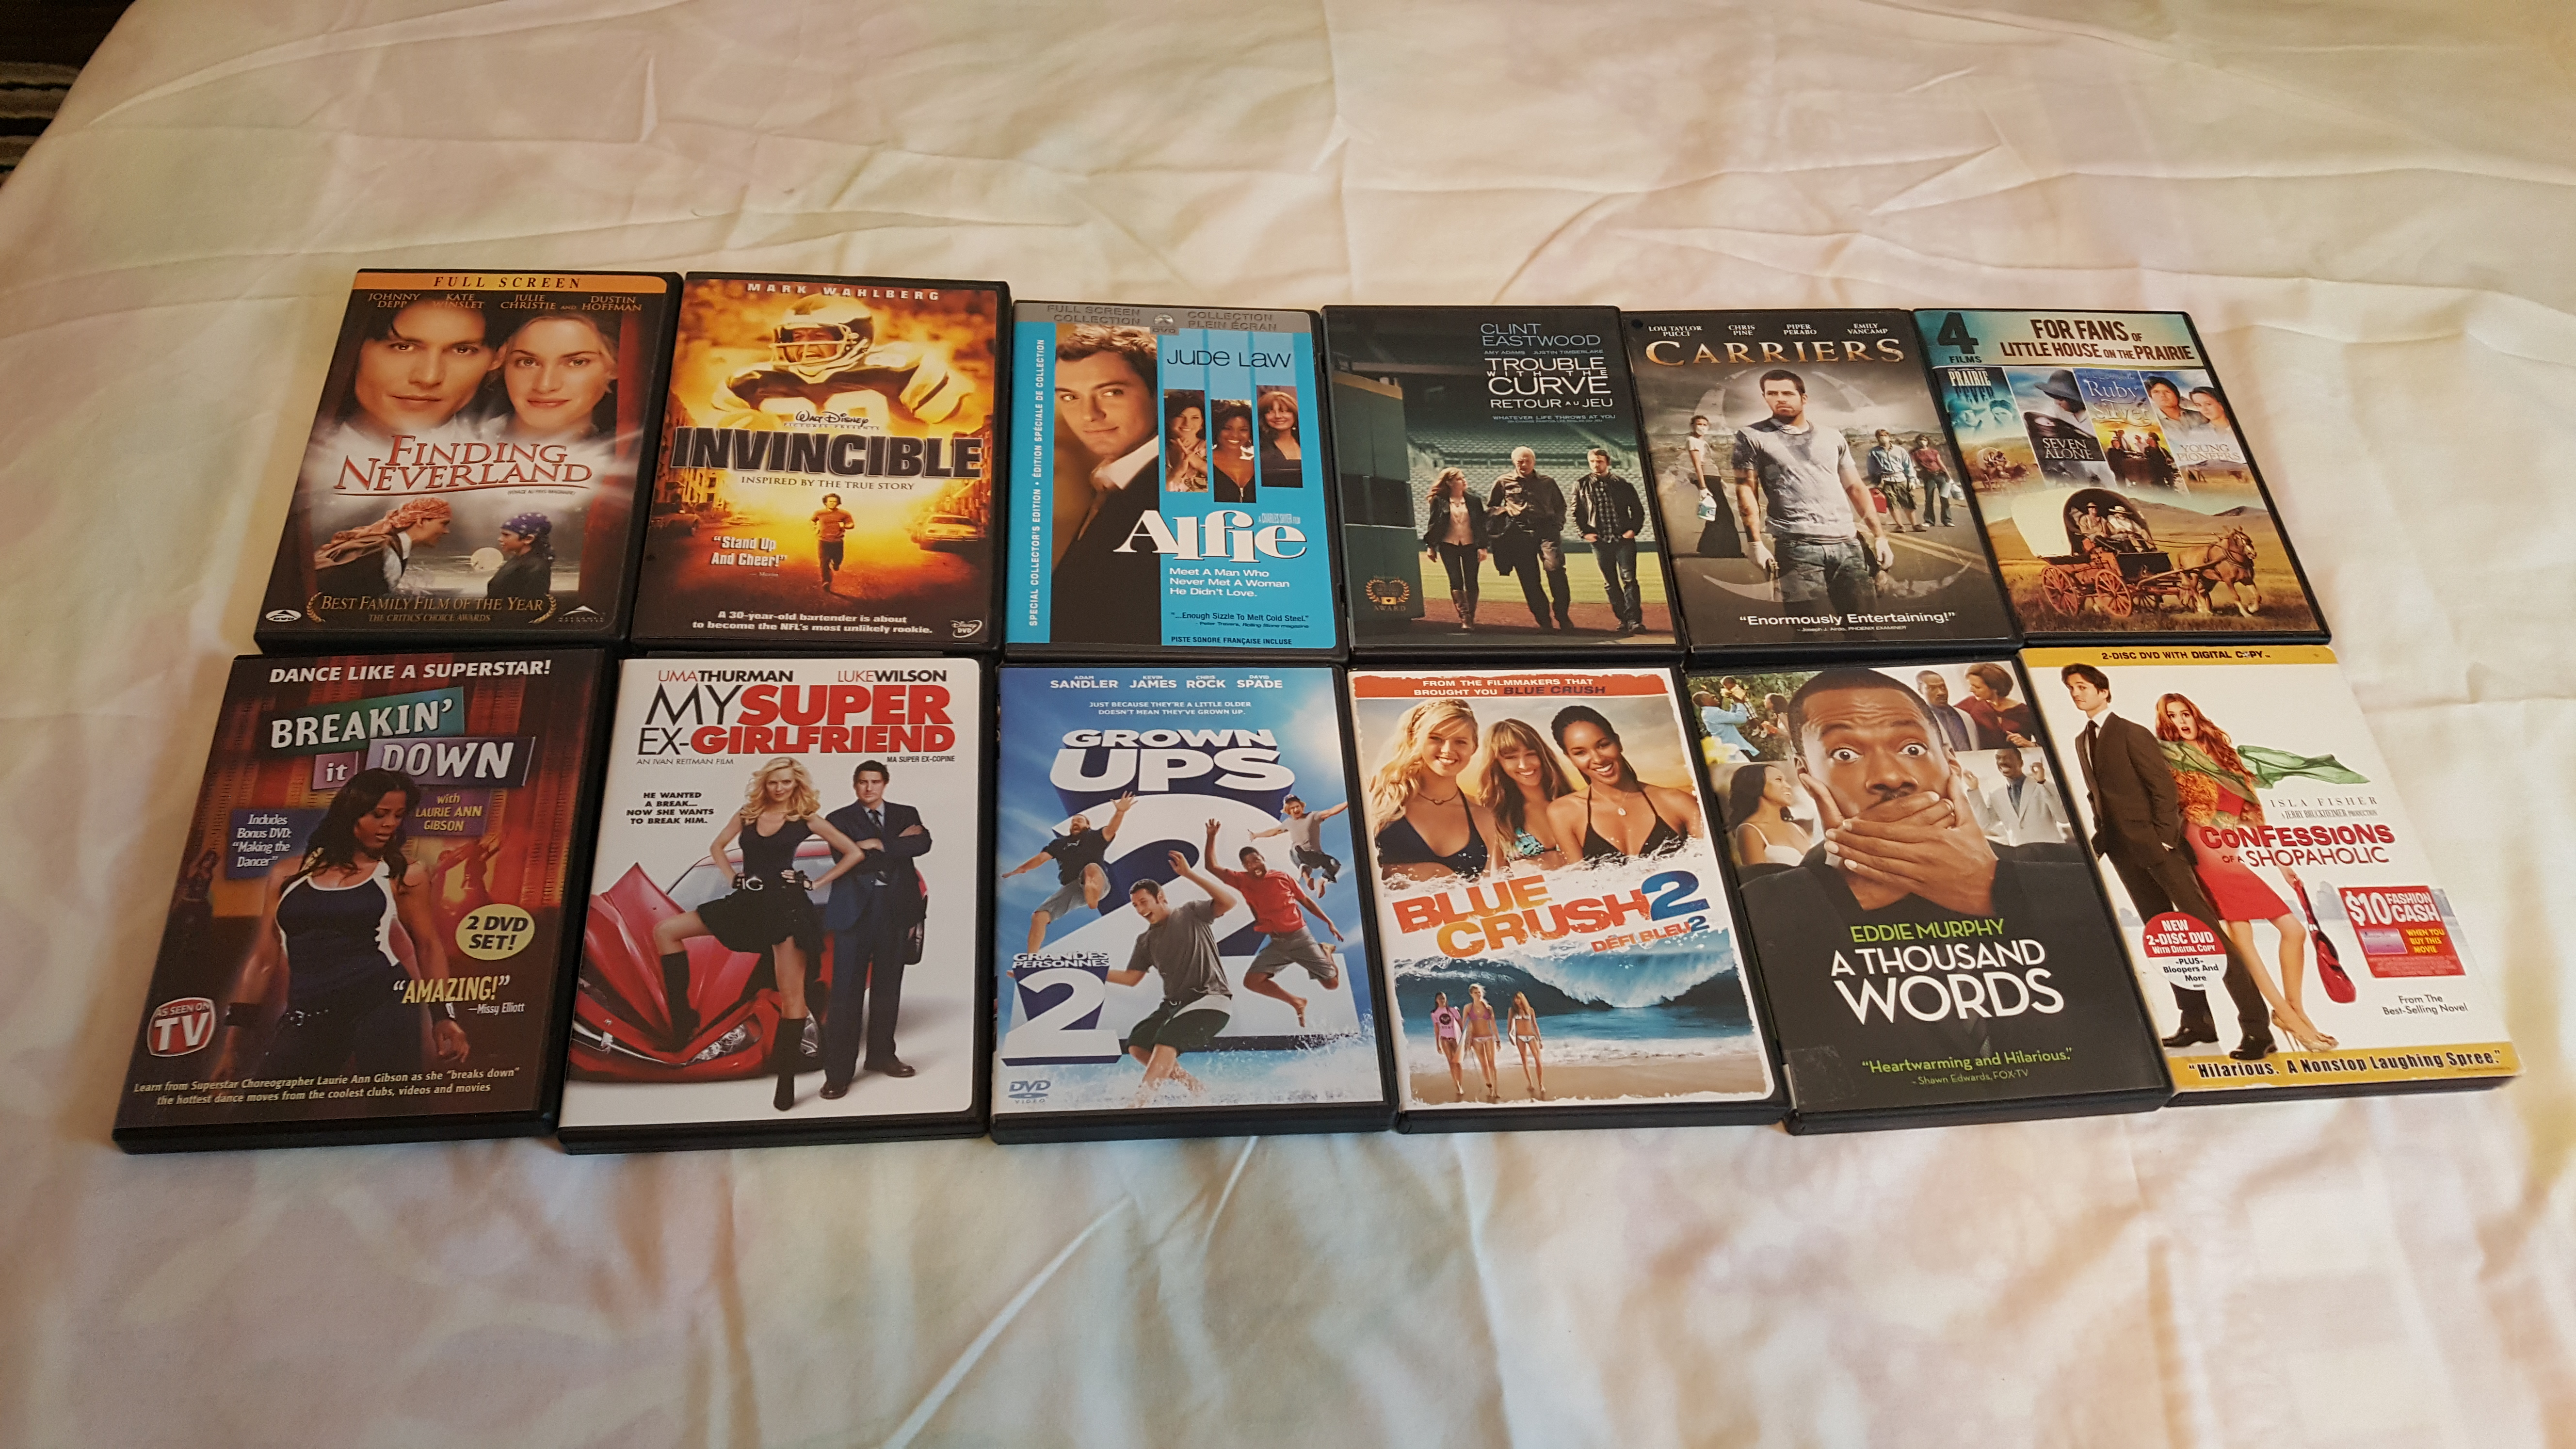 Movies $15.00 for all 12 movies